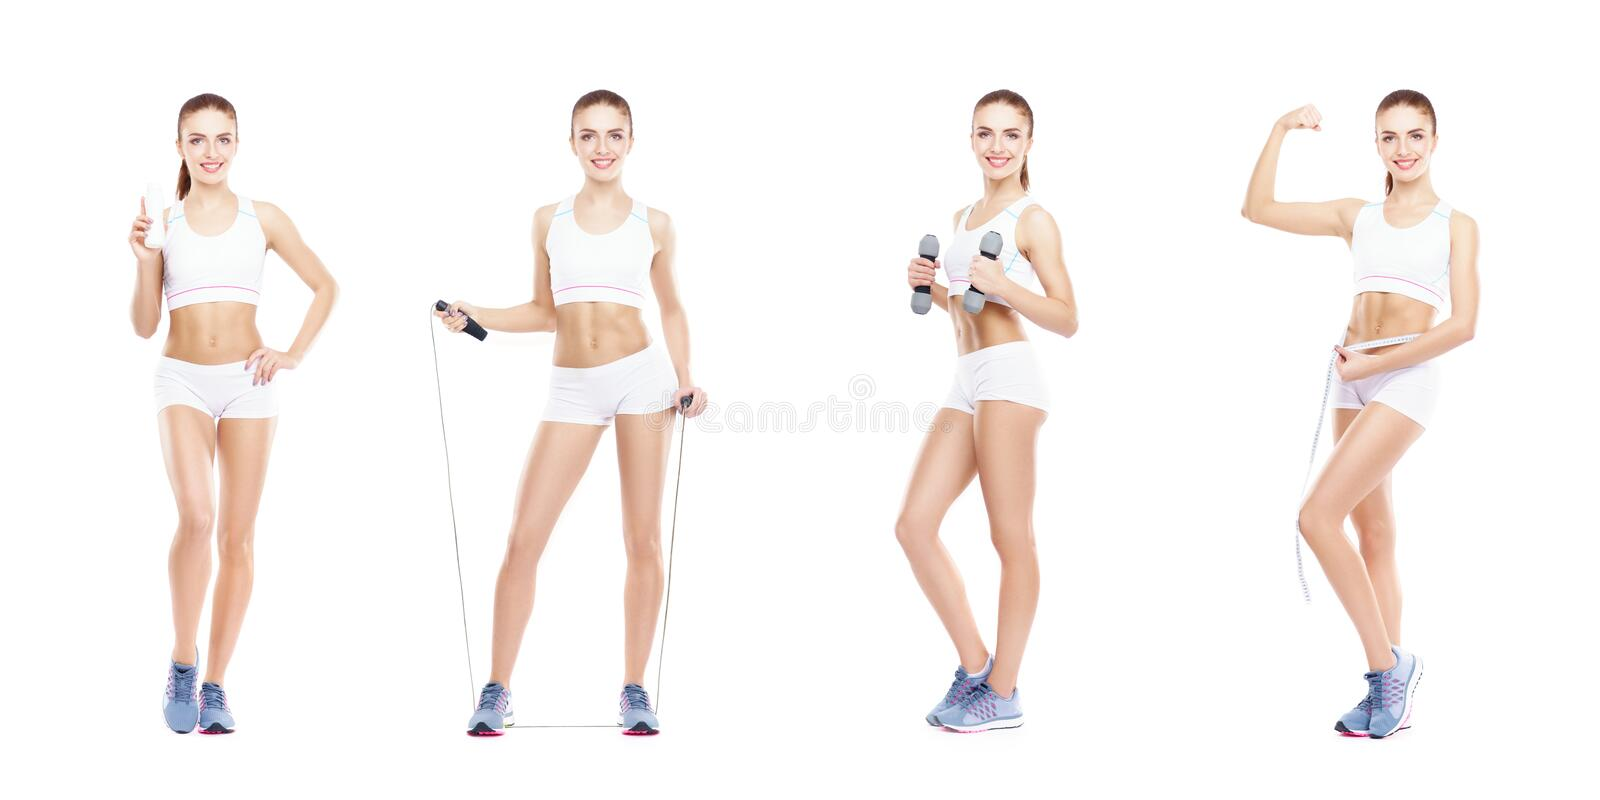 Healthy, sporty and beautiful girl isolated on white background. Woman in a fitness workout collection. Nutrition, diet royalty free stock images